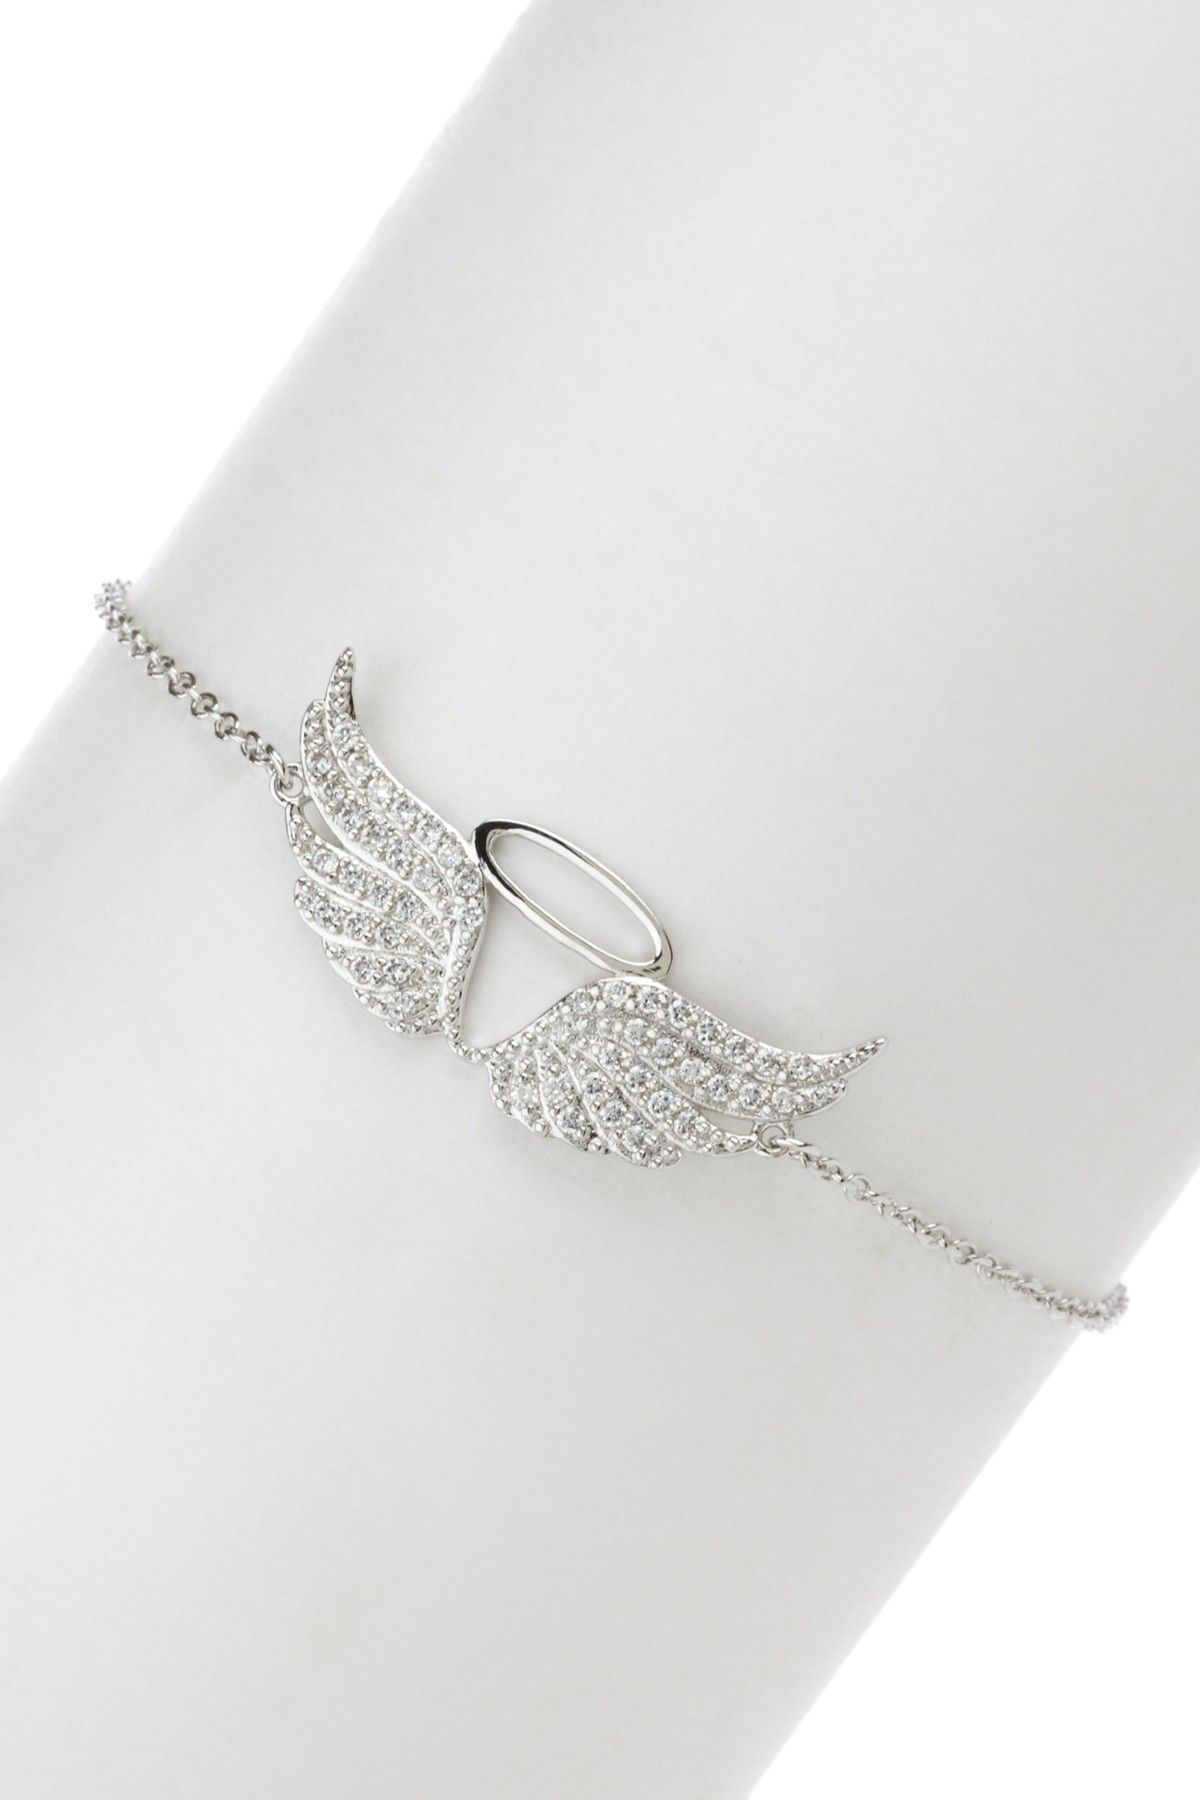 Angel Wing Charm Bracelet Clothes Wings Jewelry